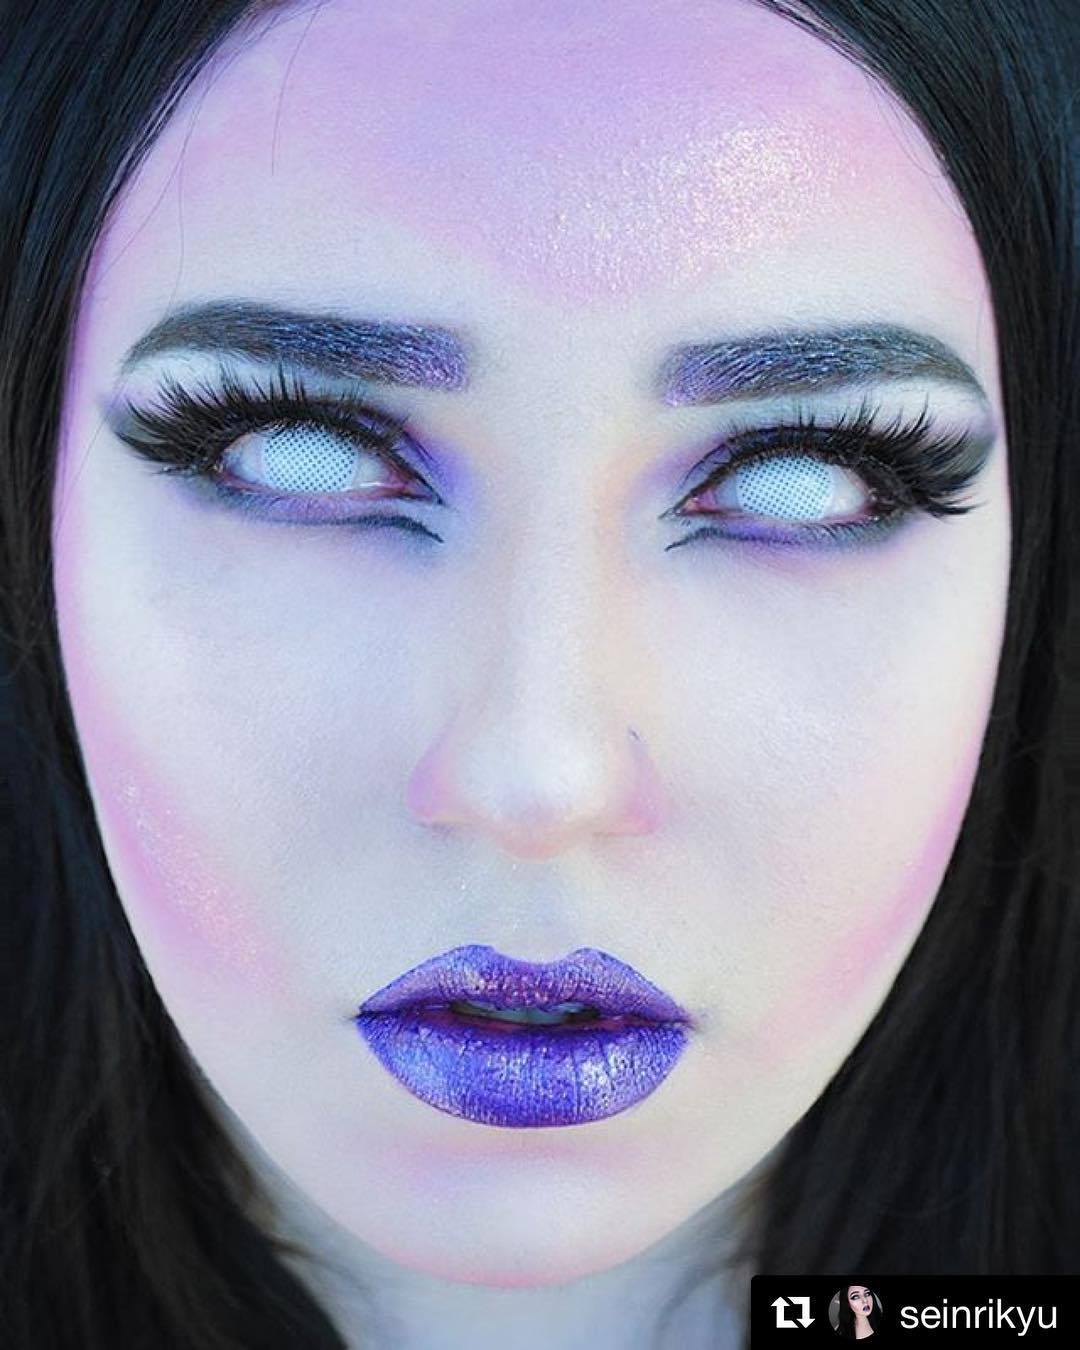 sfx white mesh (prescription) ohmykitty online store White Bright Blue Contacts these amazing contacts has tiny holes that allows you to see but yet whites out your pupil these are great and perfect for a futuristic halloween costume